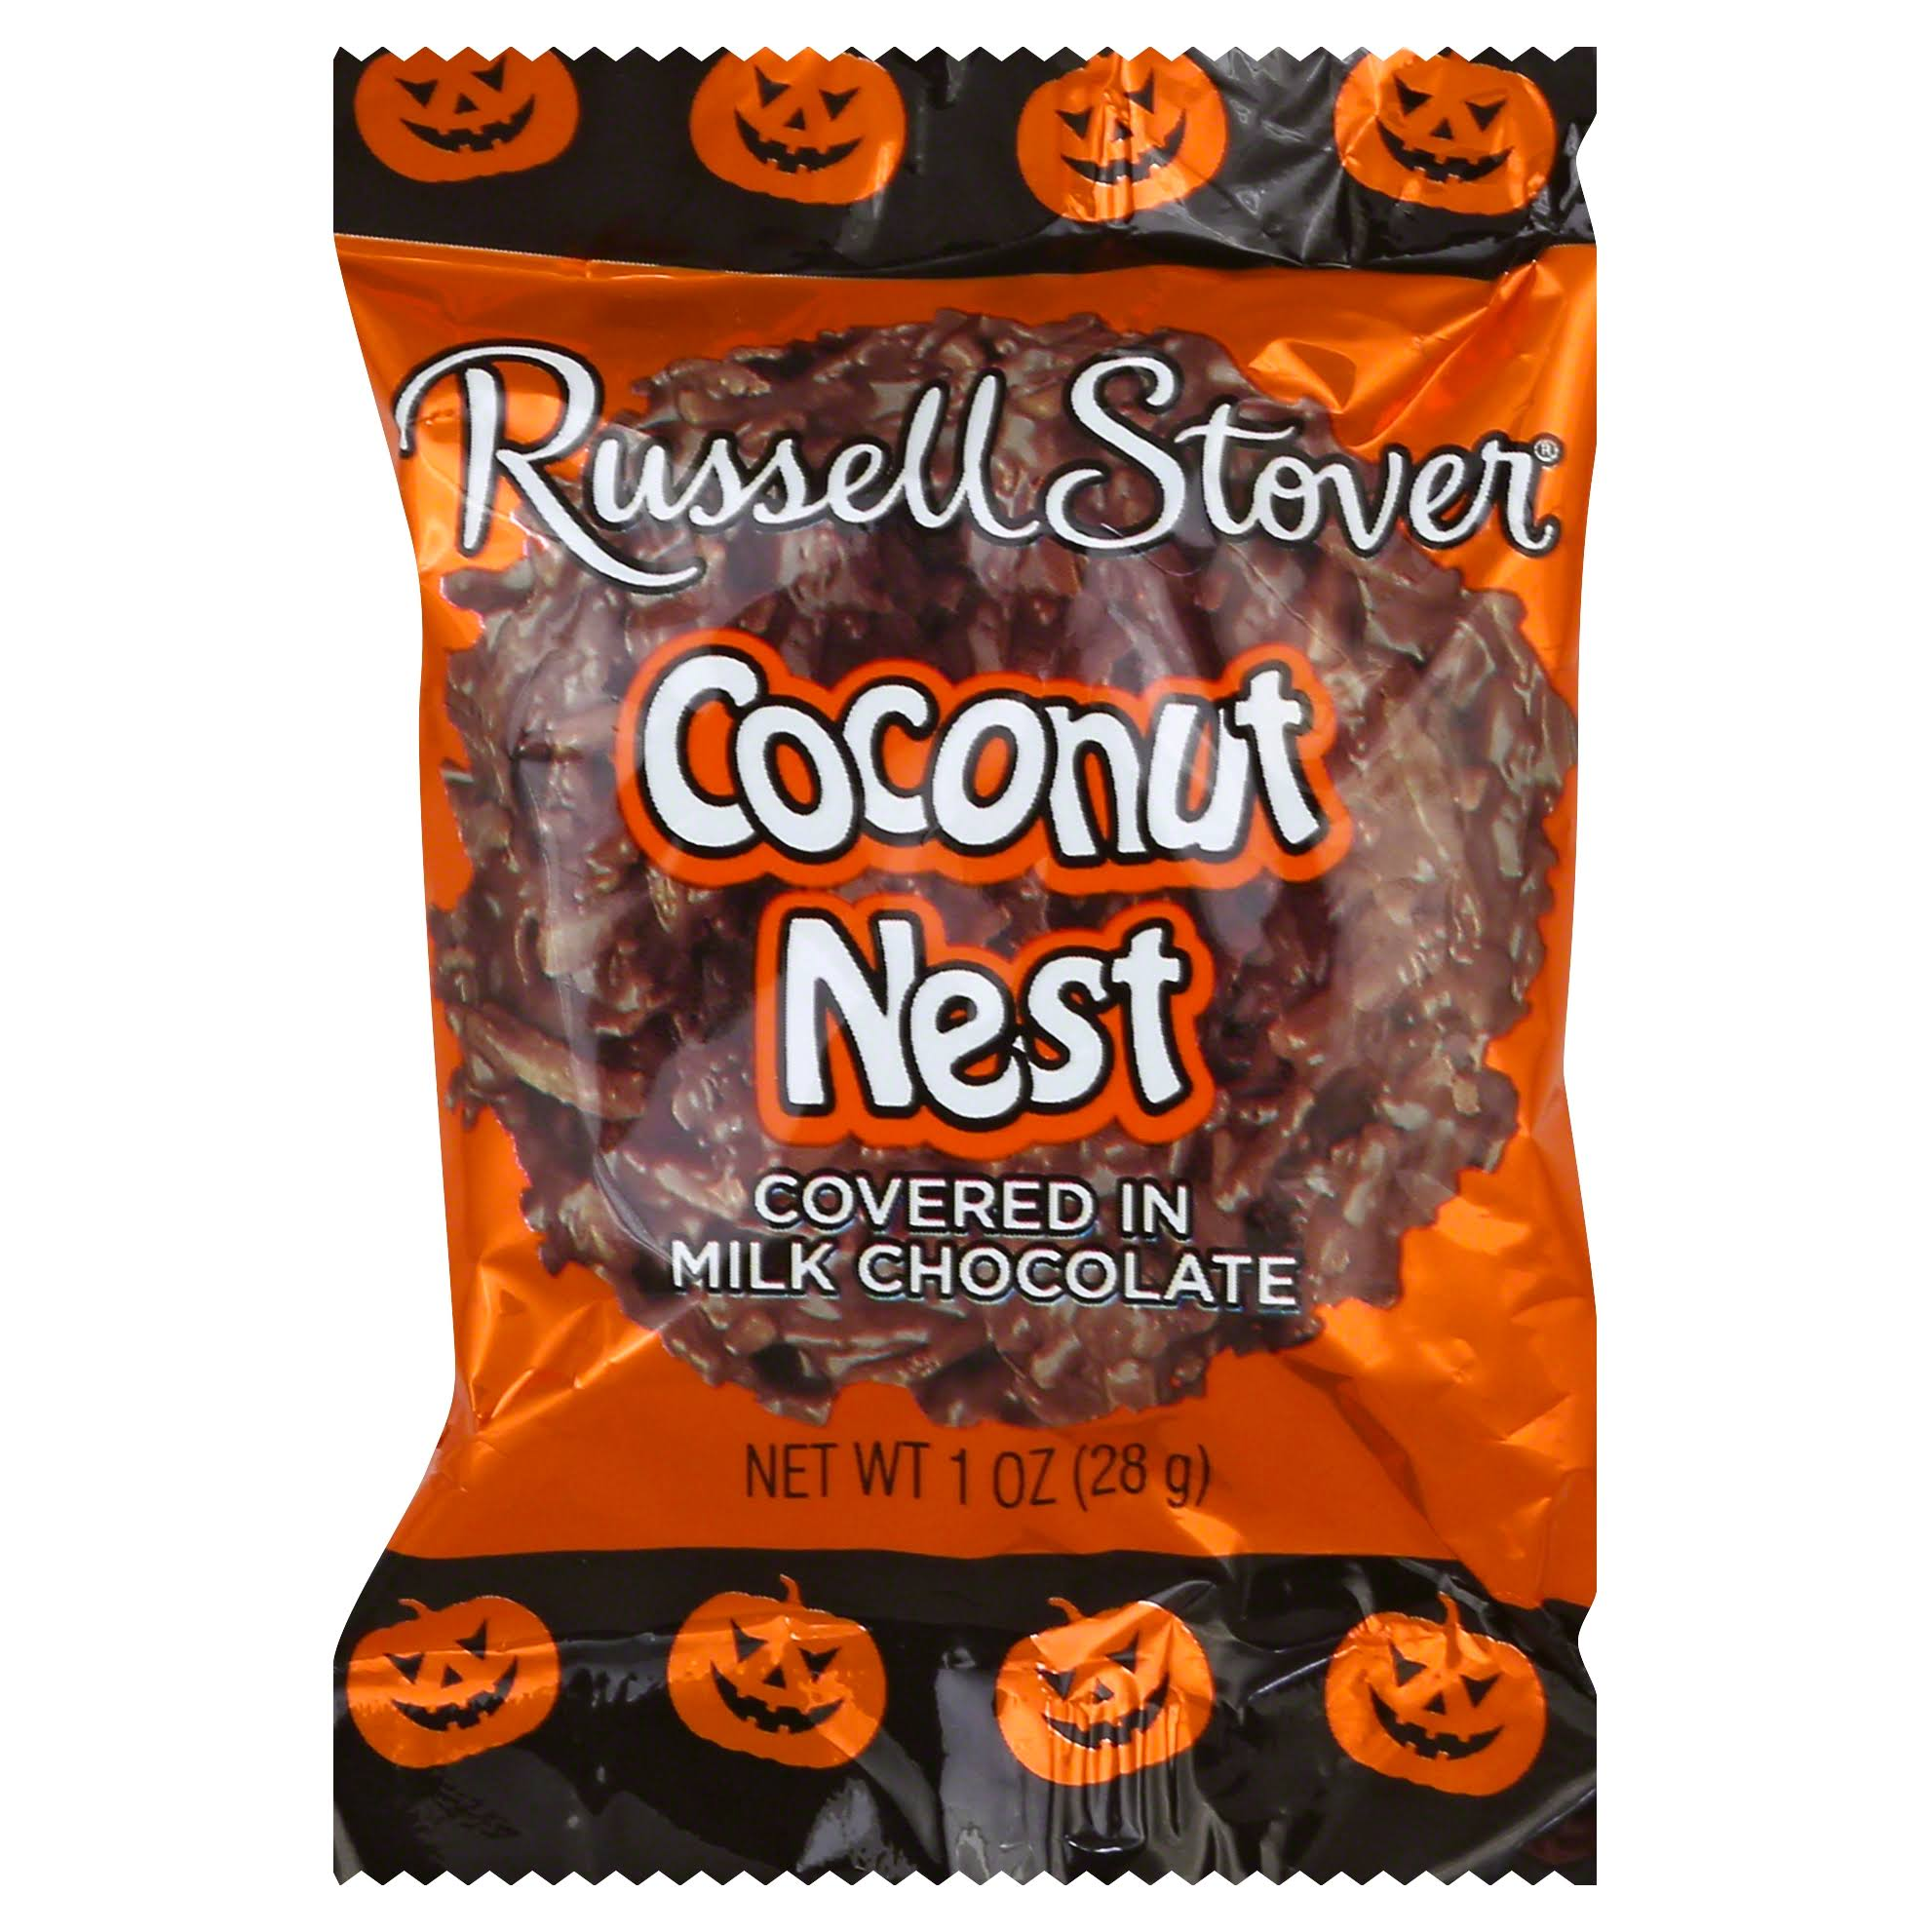 Russell Stover Coconut Nest - 1 oz